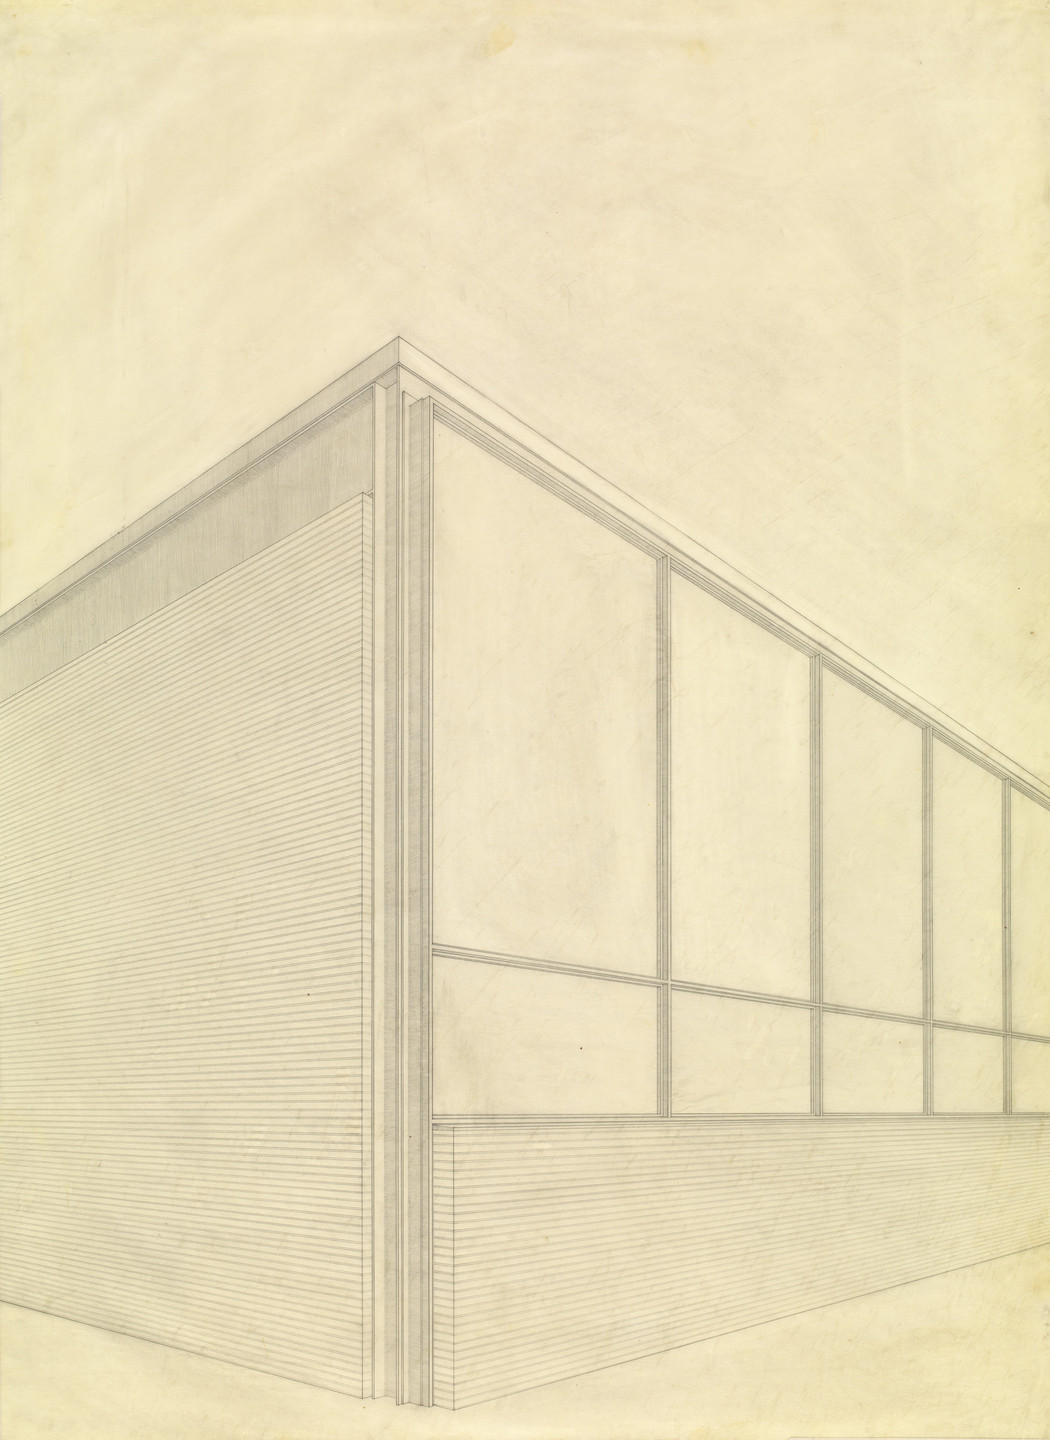 Ludwig Mies van der Rohe. IIT Library and Administration Building, Chicago, Illinois, Perspective for southeast corner. c. 1944-45